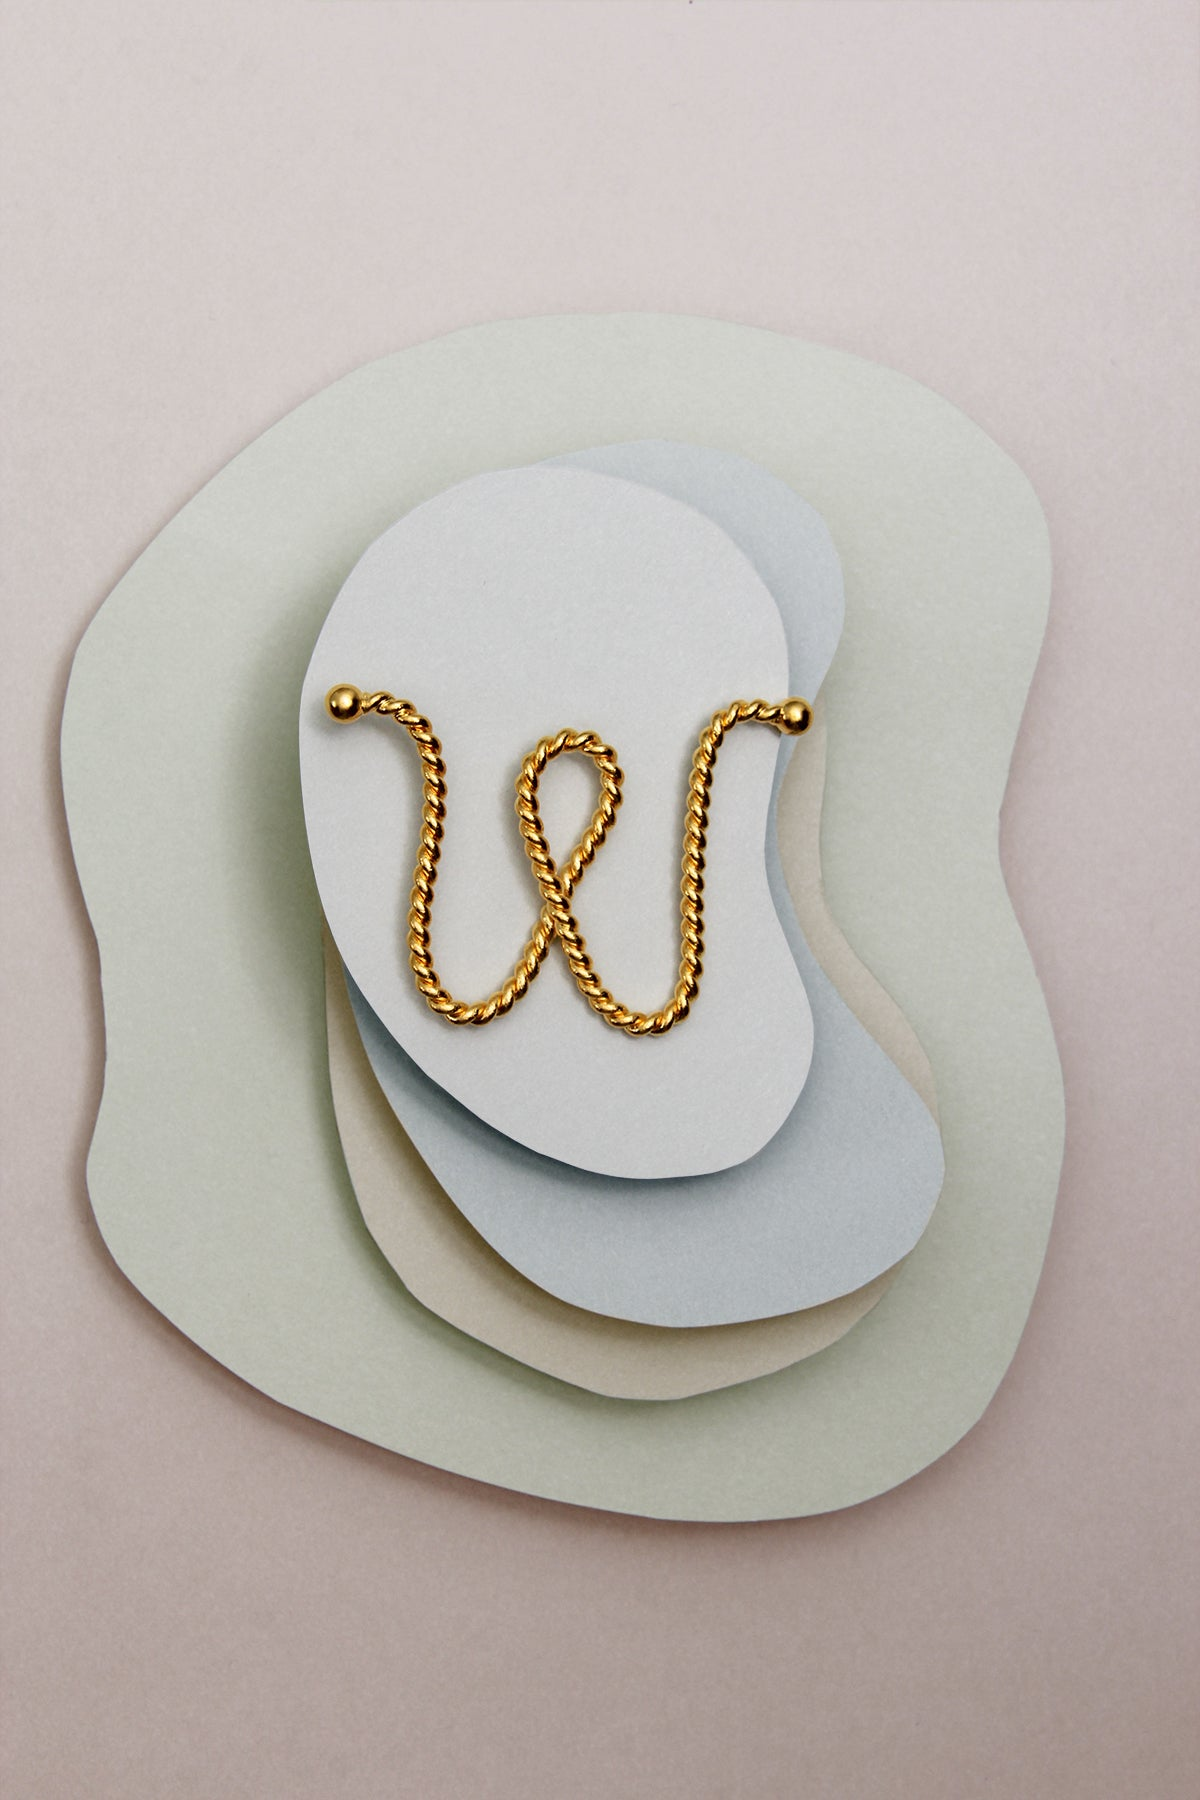 THE INITIAL W NECKLACE